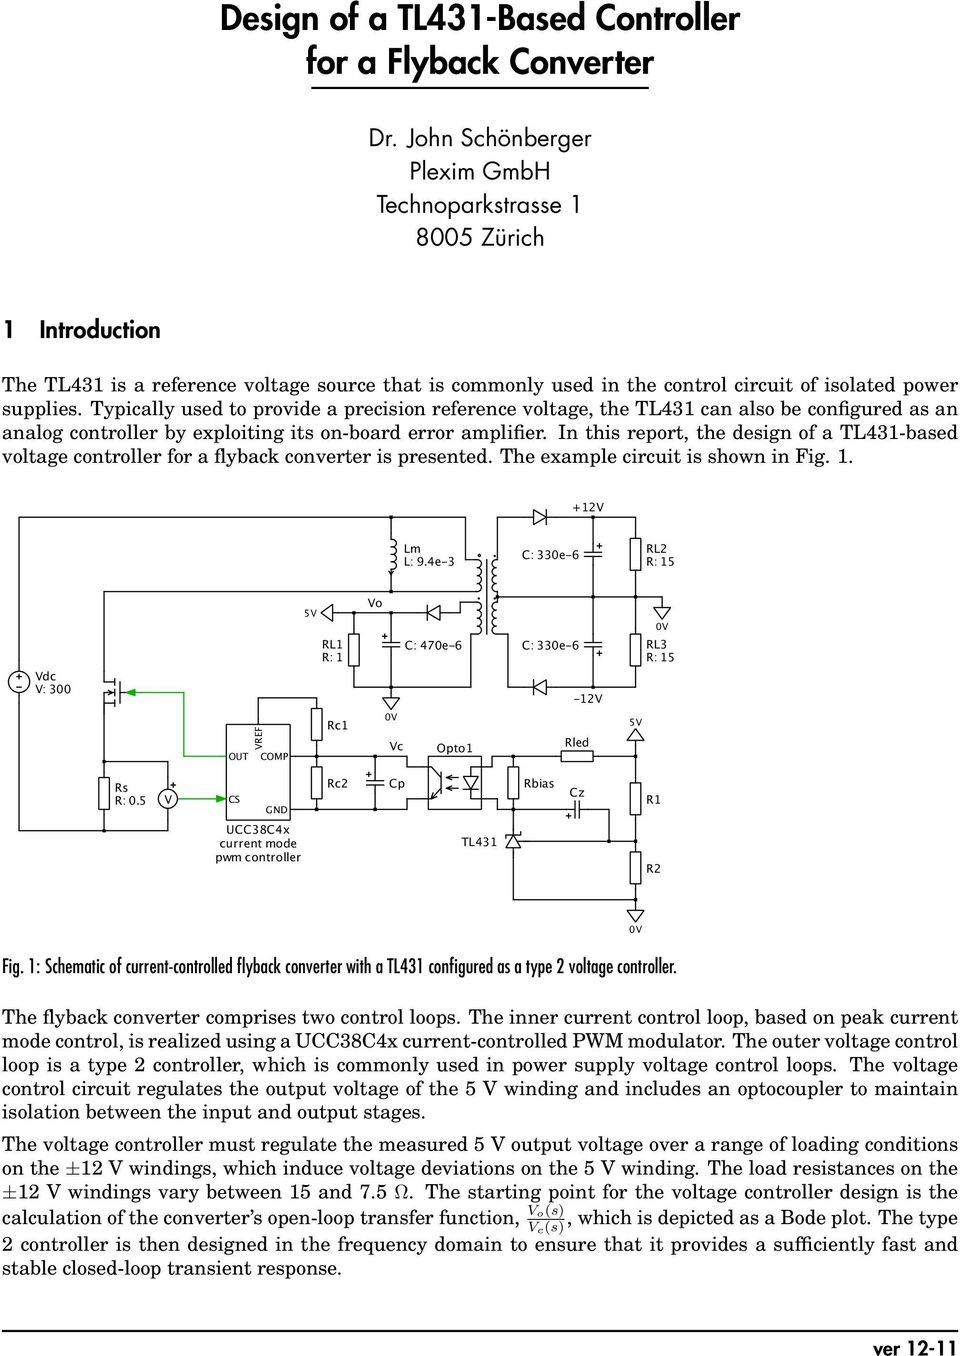 Design Of A Tl431 Based Controller For Flyback Converter Pdf Adjustable Regulator By Electronic Projects Circuits Typically Used To Provide Precision Reference Voltage The Can Also Be Configured As